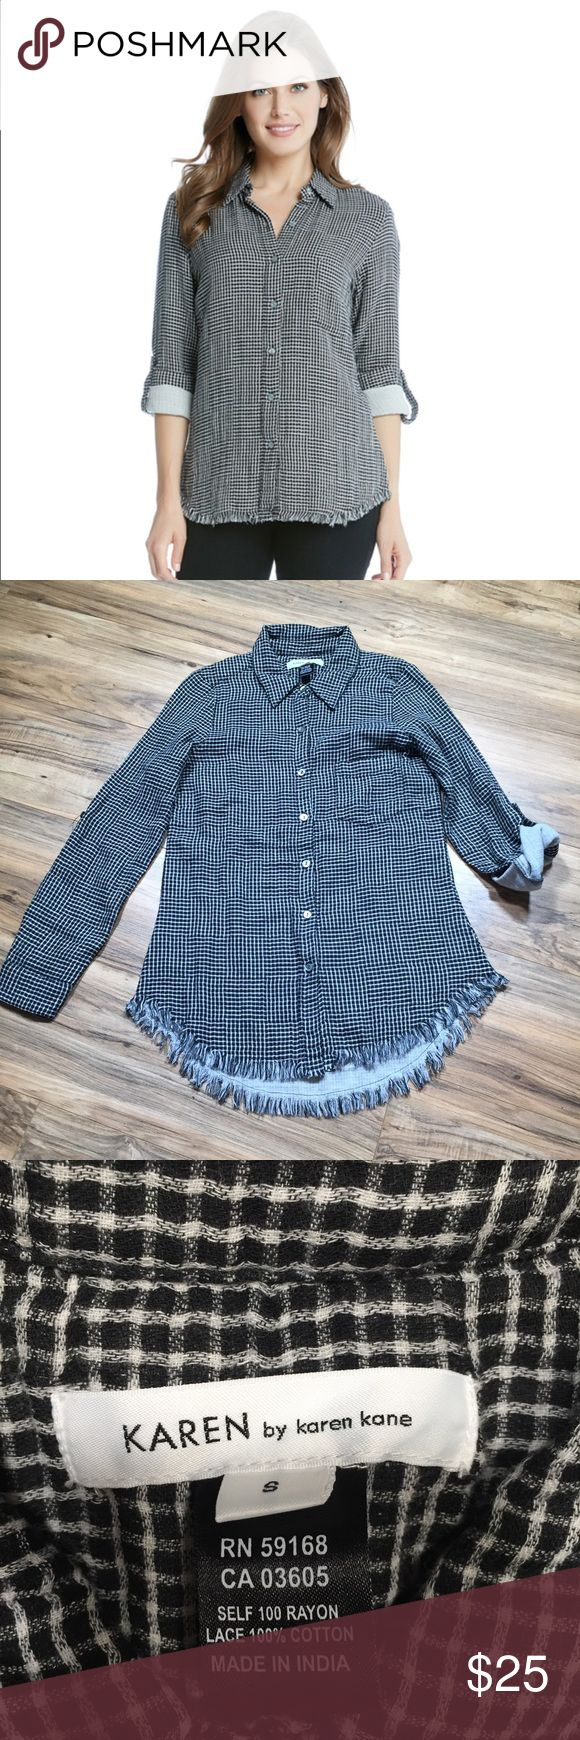 "Karen Kane Fringe Button Down w/ roll up sleeves This button up shirt is both casual and polished with a classic plaid pattern, roll tab sleeves, and a fringed hem.  Measurements: Pit to Pit: 18.25""  Waist: 17""  Length: 29.5"" Sleeve Length: 16"" cuffed 23.5"" uncuffed Karen Kane Tops Button Down Shirts"